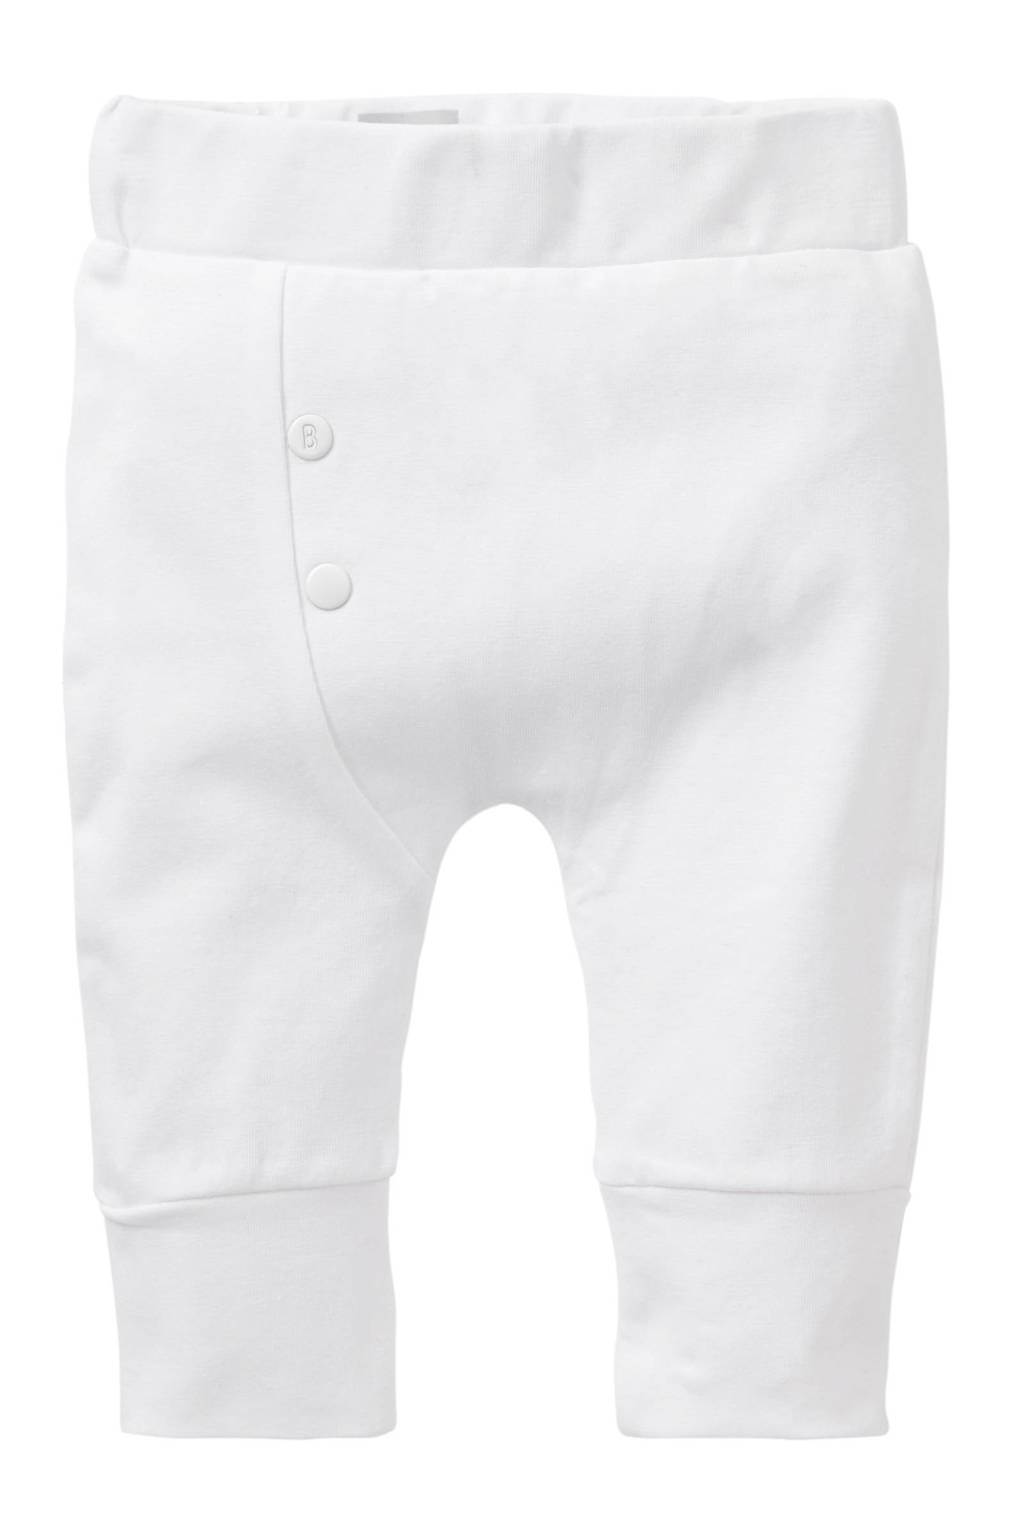 born to be famous. baby newborn broek wit, Wit